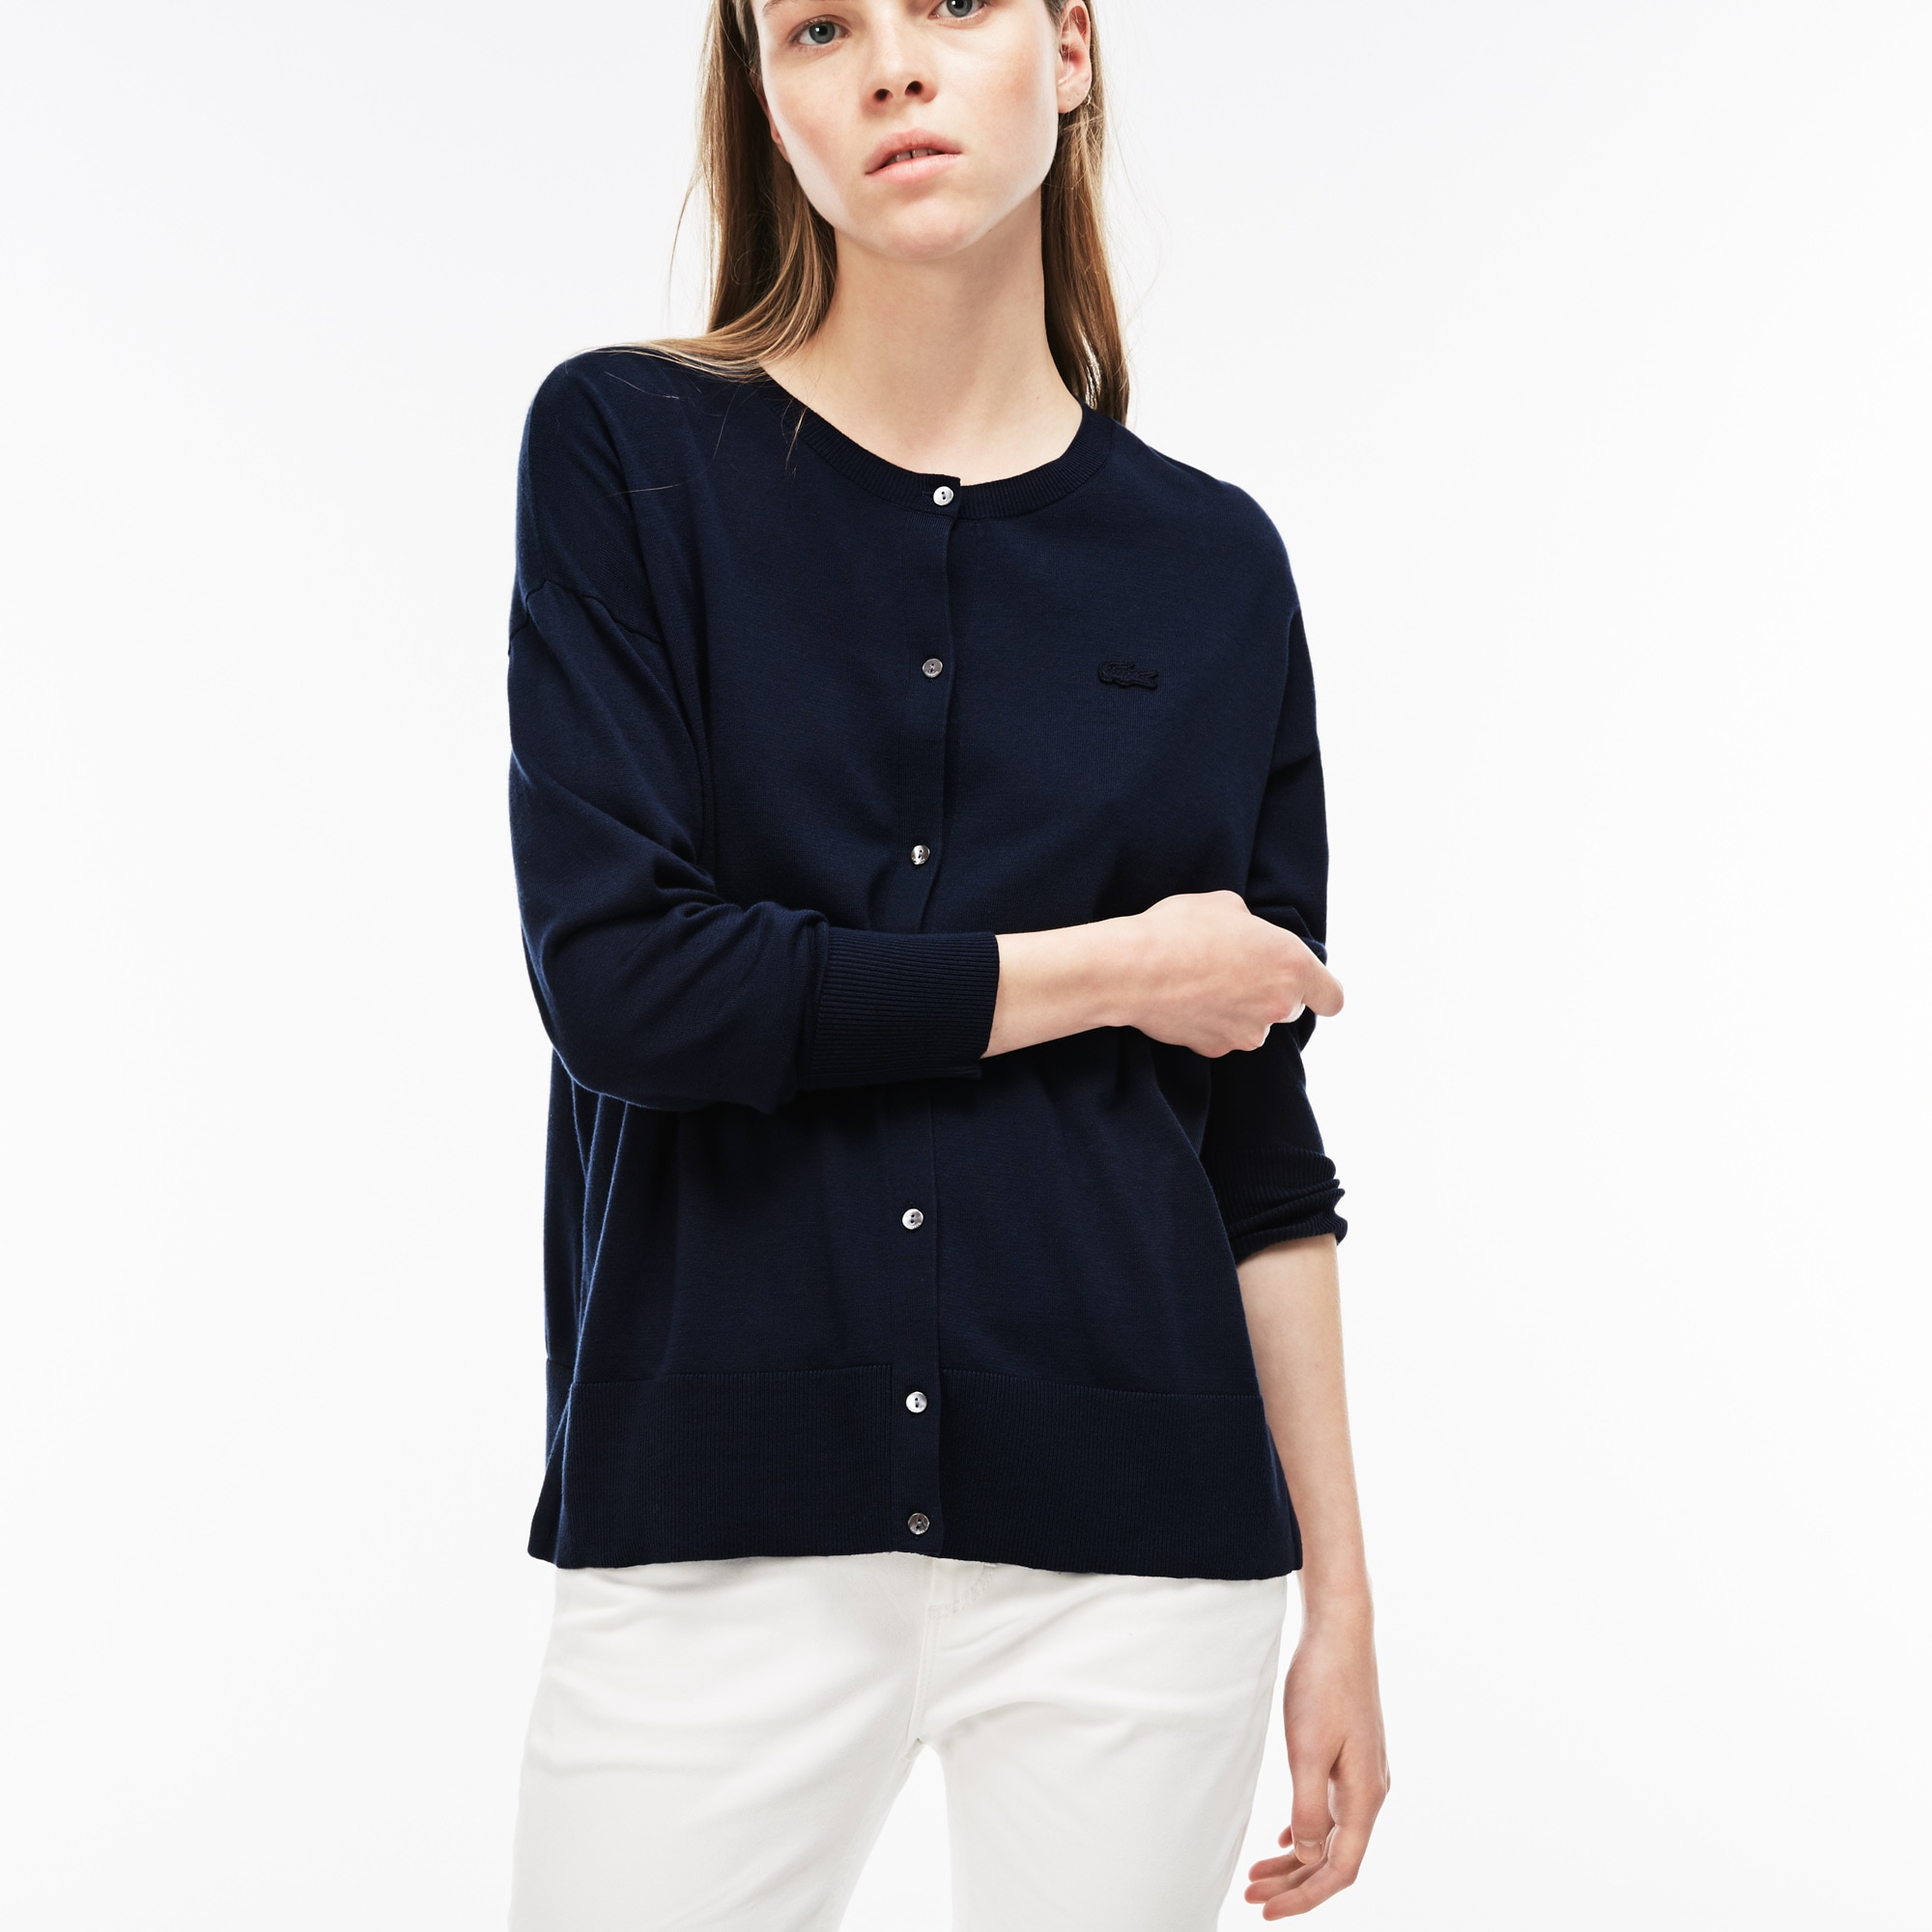 Women's High Neck Cotton Jersey Cardigan